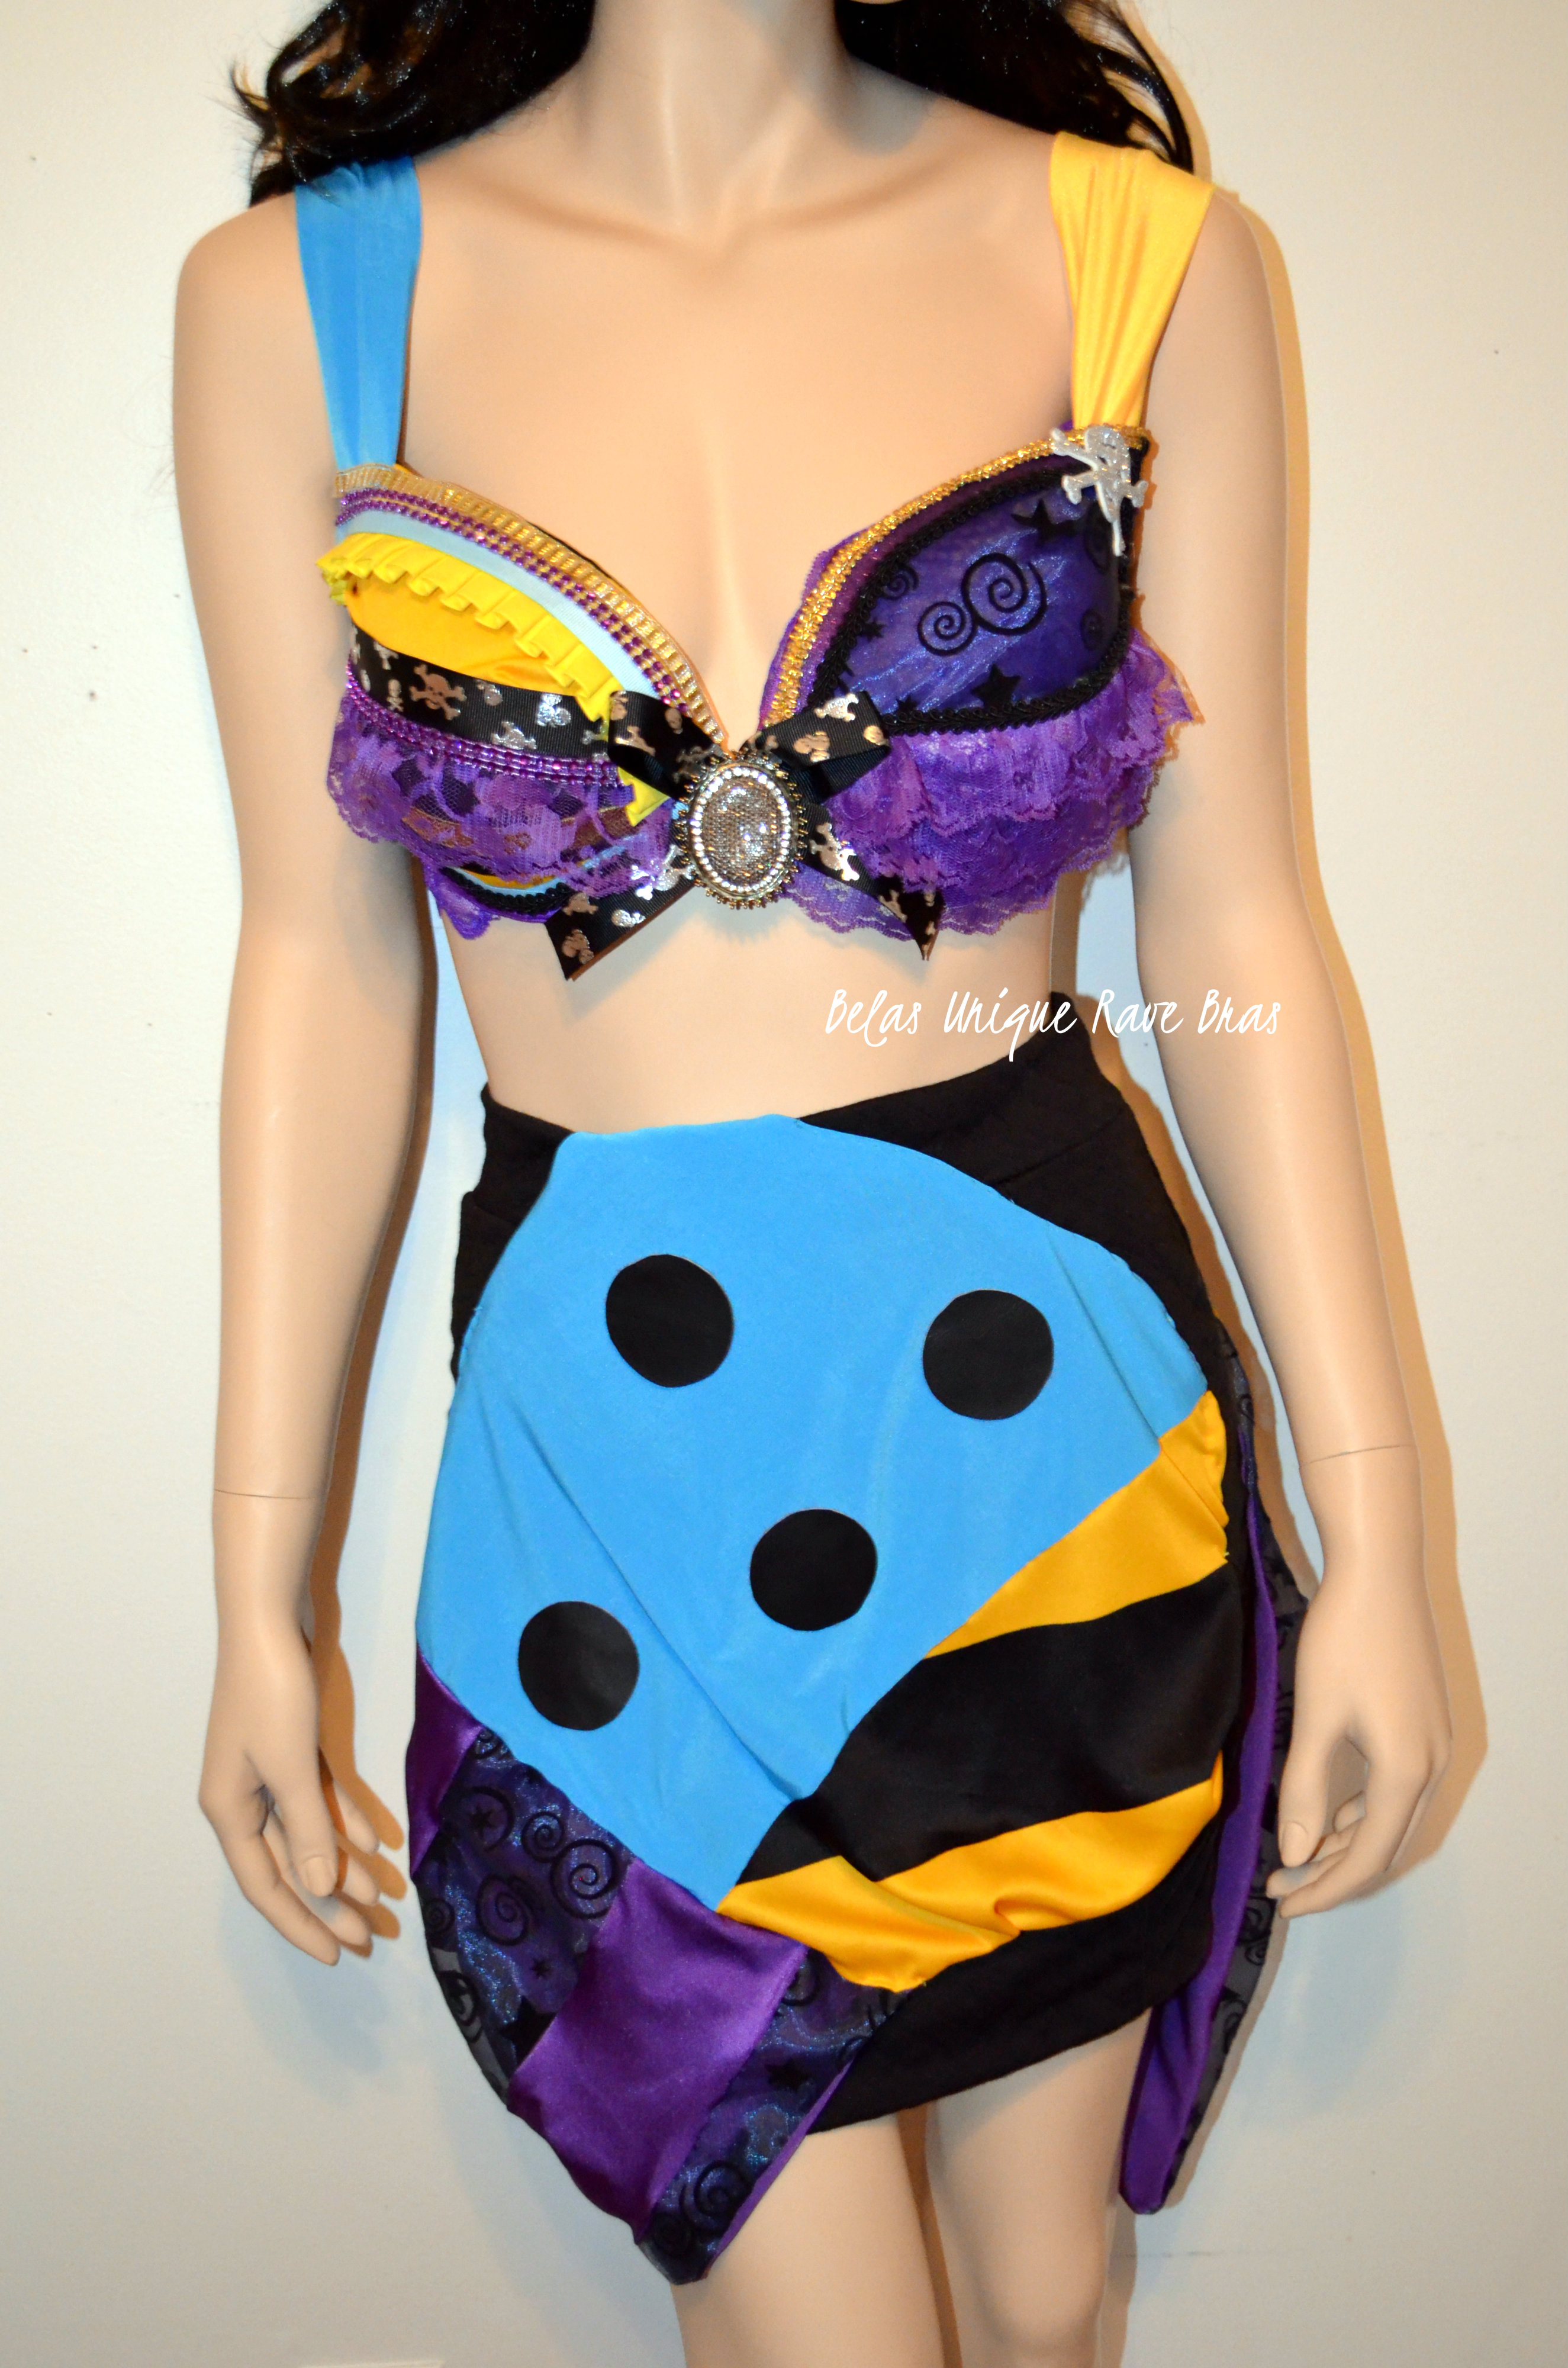 ddf2442d93a Sally Nightmare Before Christmas Costume Cosplay Dance Rave Bra Halloween  Burlesque Show Girl